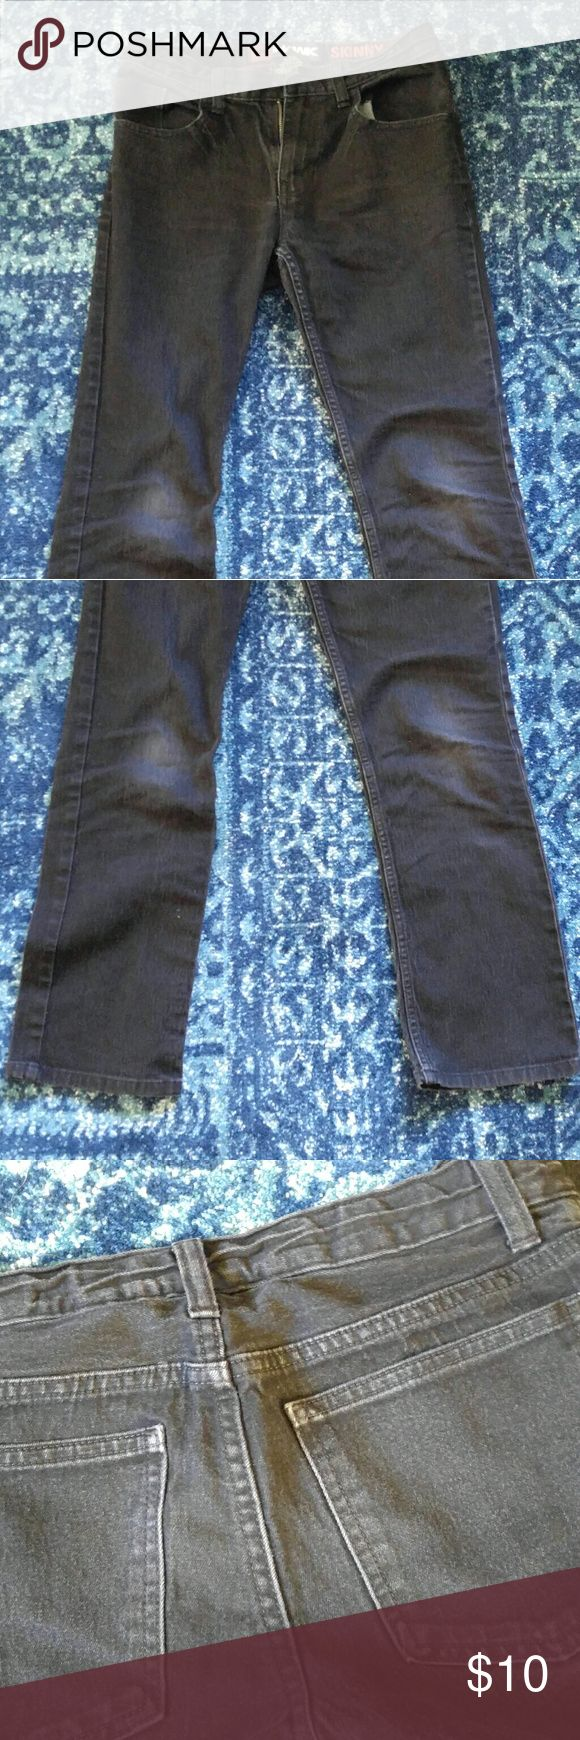 """Boys' size 16 Tony Hawk black skinny jeans These jeans have only been worn a few times. They are truly black; the last picture is the best representation of the color. There is very slight fading at the knees (really, less than it appears in my shabby photography ;). They are classified as """"skinny,"""" however they are not super skinny or form-fitting.  These fit my son when he wore size 18 boys or 26-28x30 jeans.  Check out my closet for more young men's items!! :)  Reasonable offers are…"""